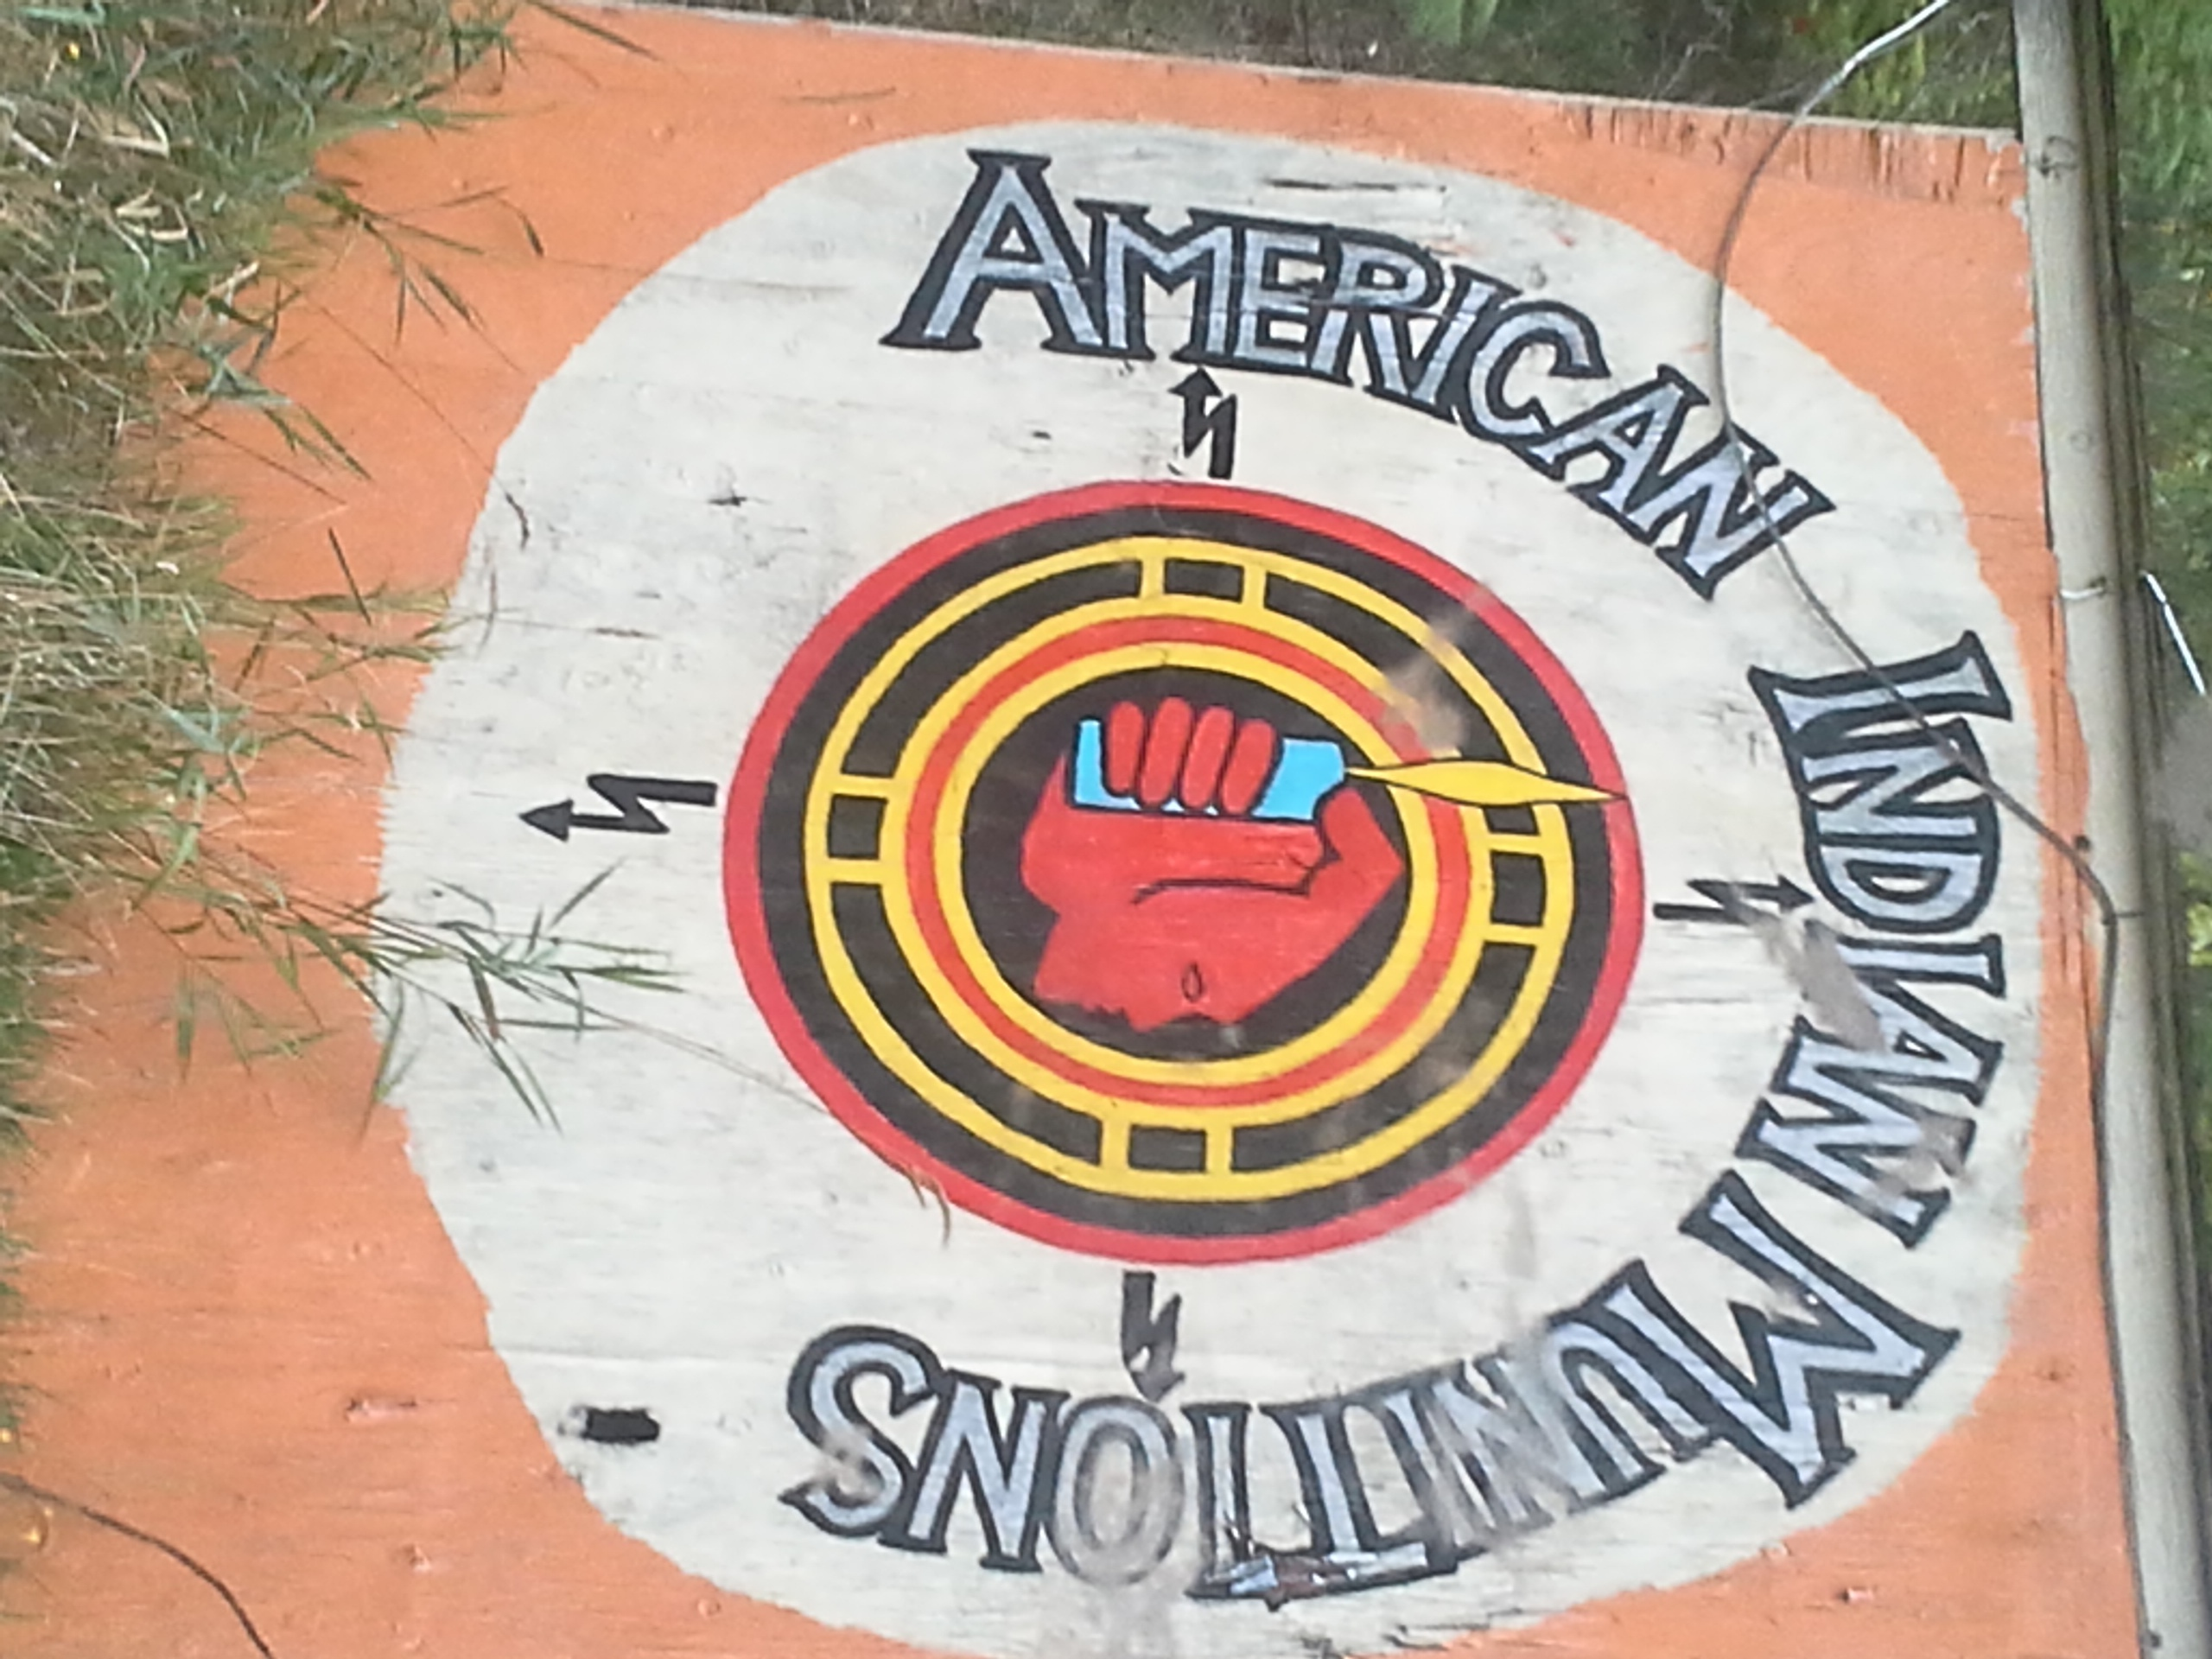 Also outside the park, a nod to the 70s radical American Indian Movement